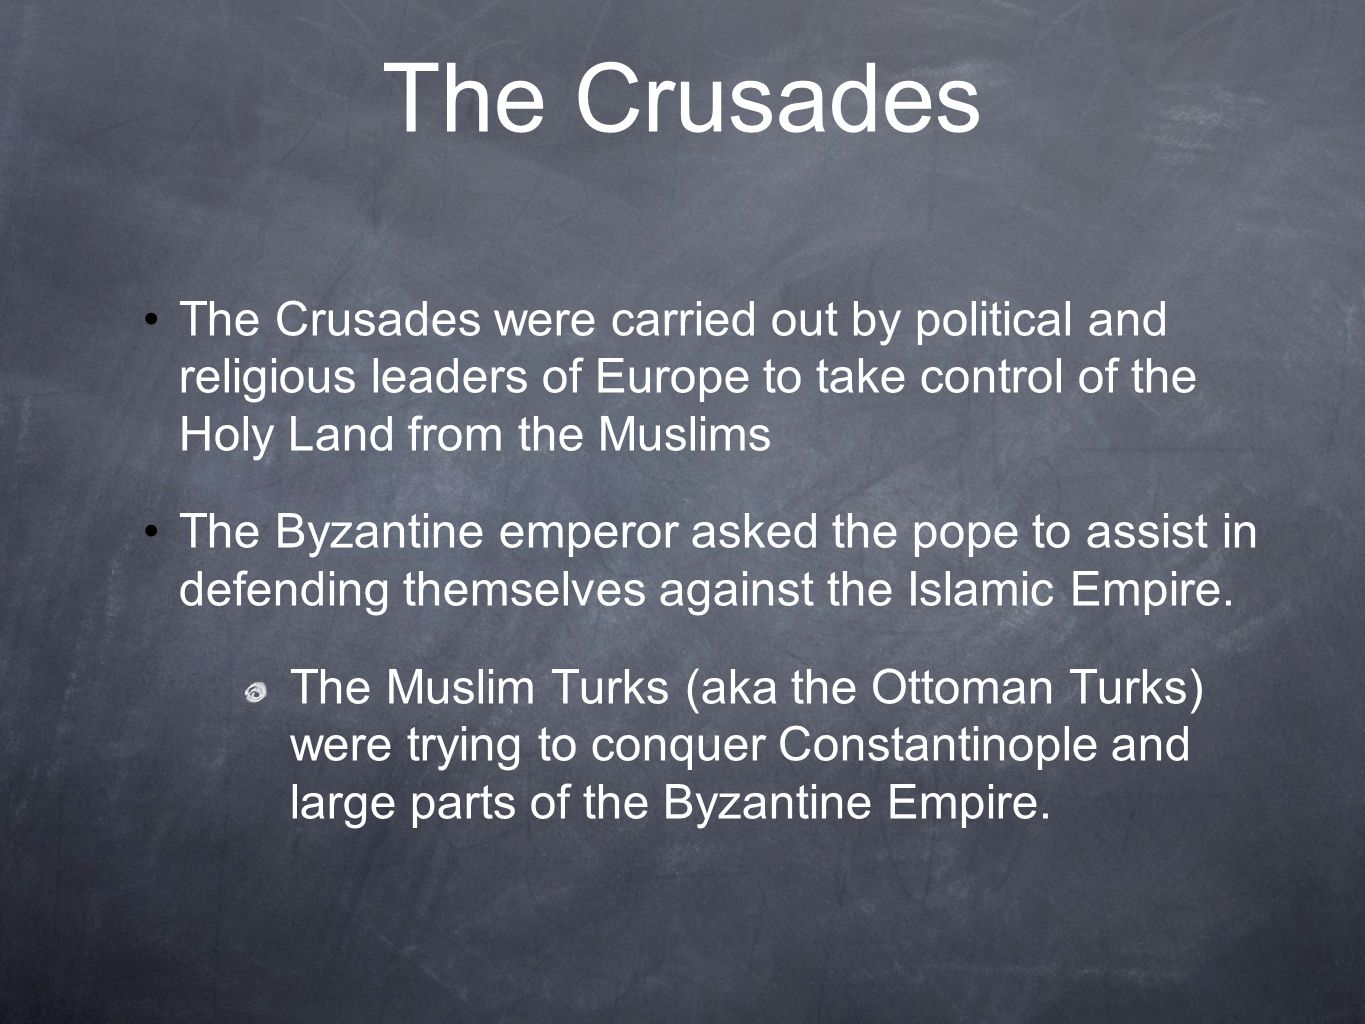 The Crusades The Crusades were carried out by political and religious leaders of Europe to take control of the Holy Land from the Muslims.